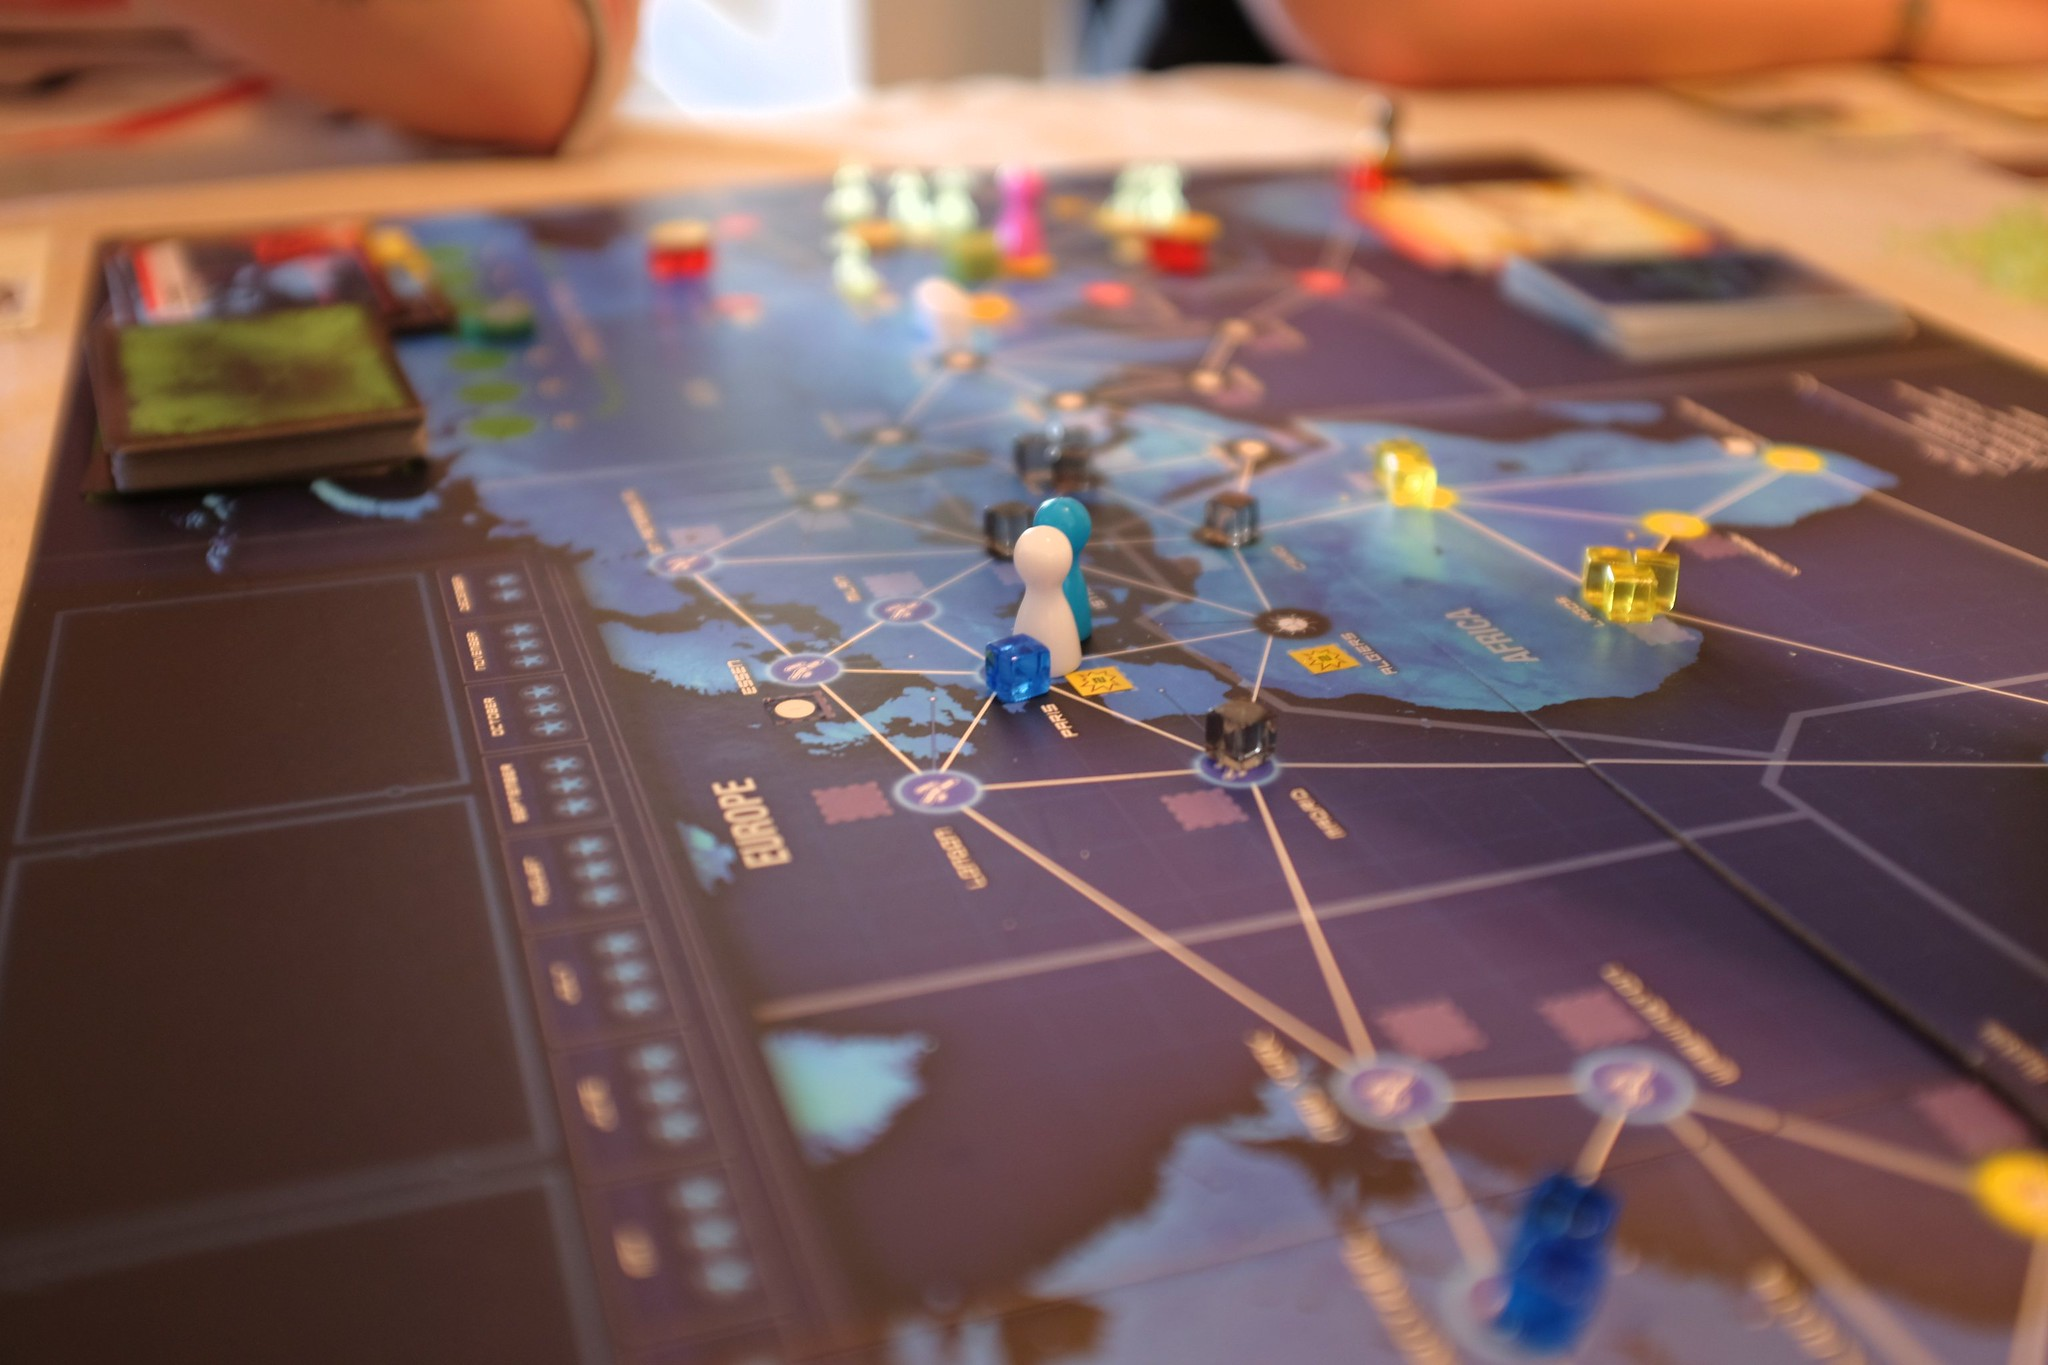 Close up of the board game Pandemic: Legacy - a cooperative game about trying to battle disease, emulating some of the ways people play to understand epidemics like the impact of coronavirus.